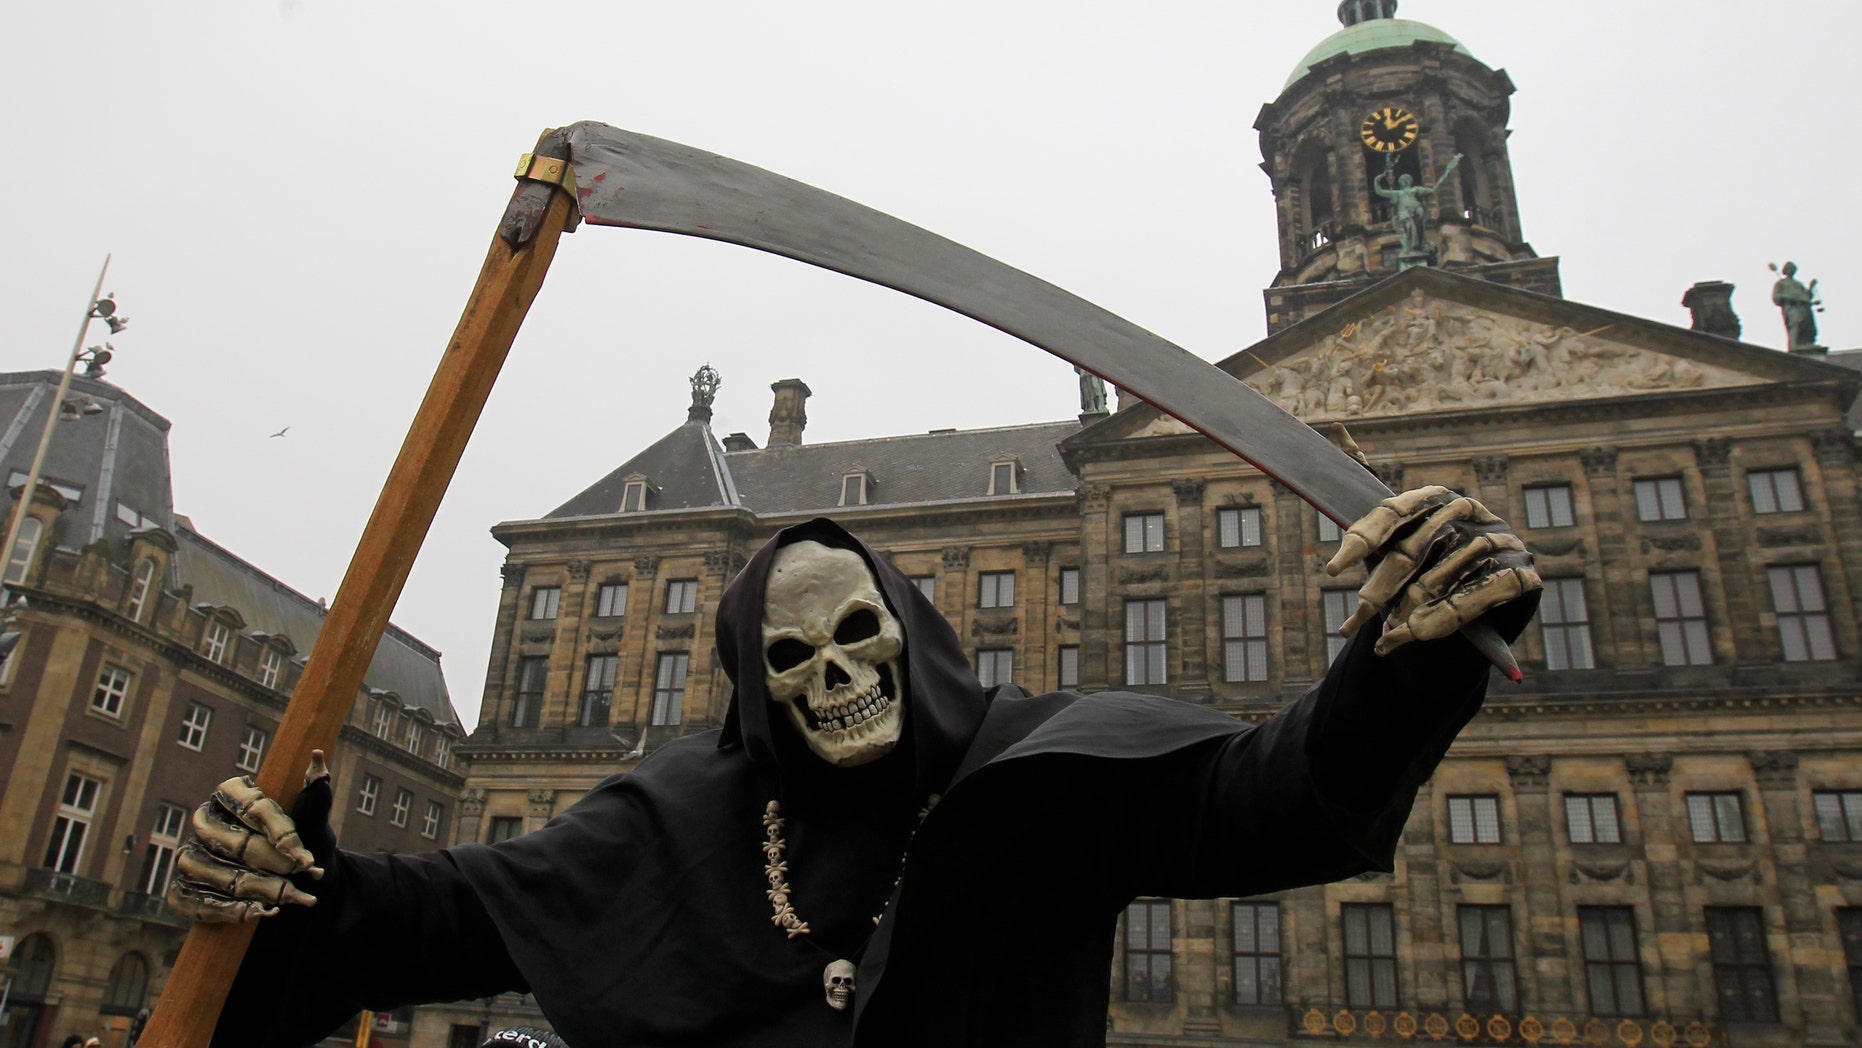 File photo - A street artist dressed as the grim reaper performs in front of the Dutch Royal Palace on Dam Square in Amsterdam March 19, 2013. (REUTERS/Yves Herman)